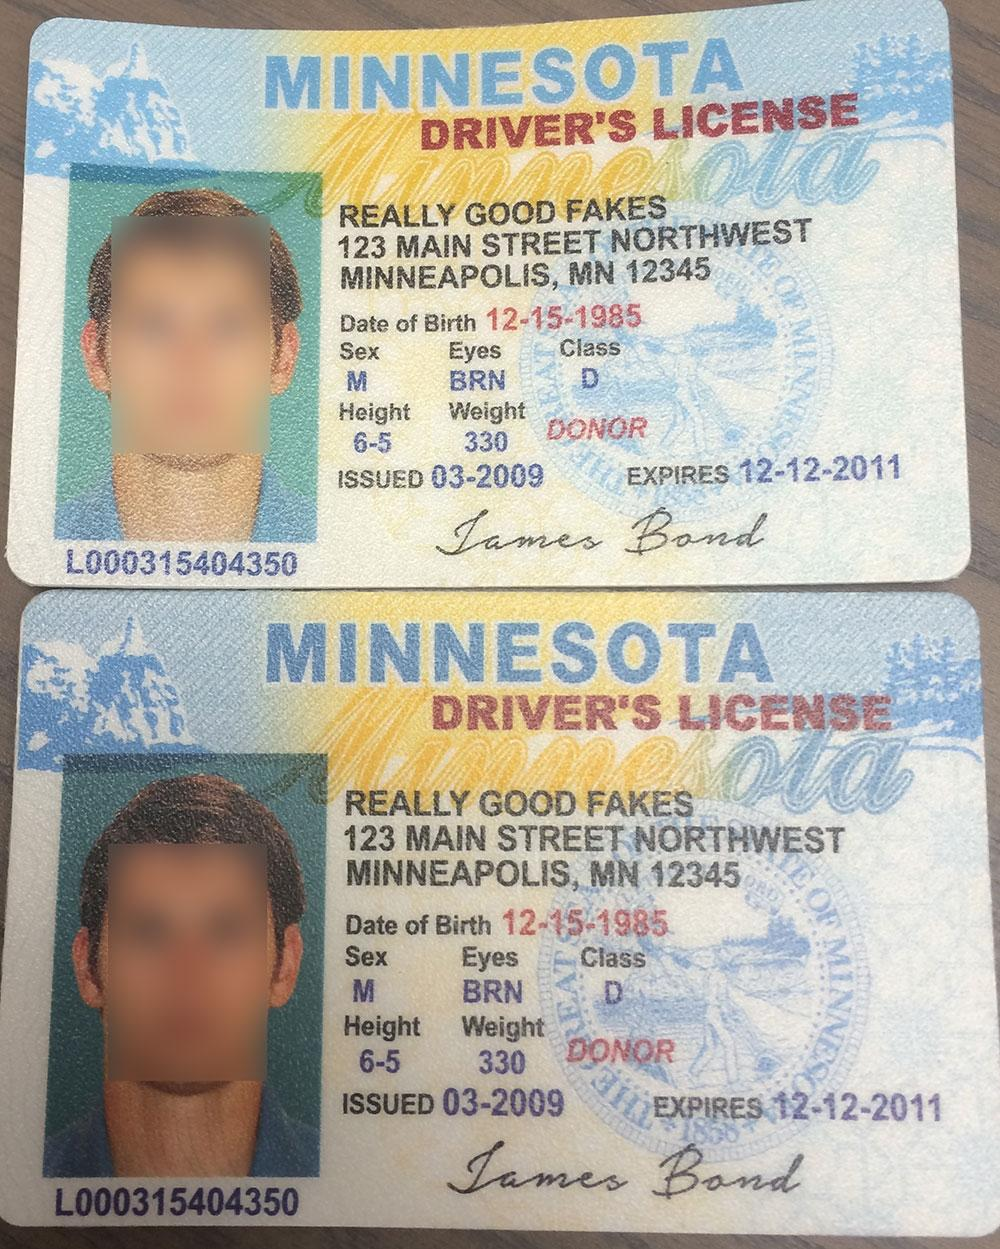 Id's Awesome Our Twitter On Mn Whatcha Reallygoodfakes New novelty Think t rgf co em7k0hc07e